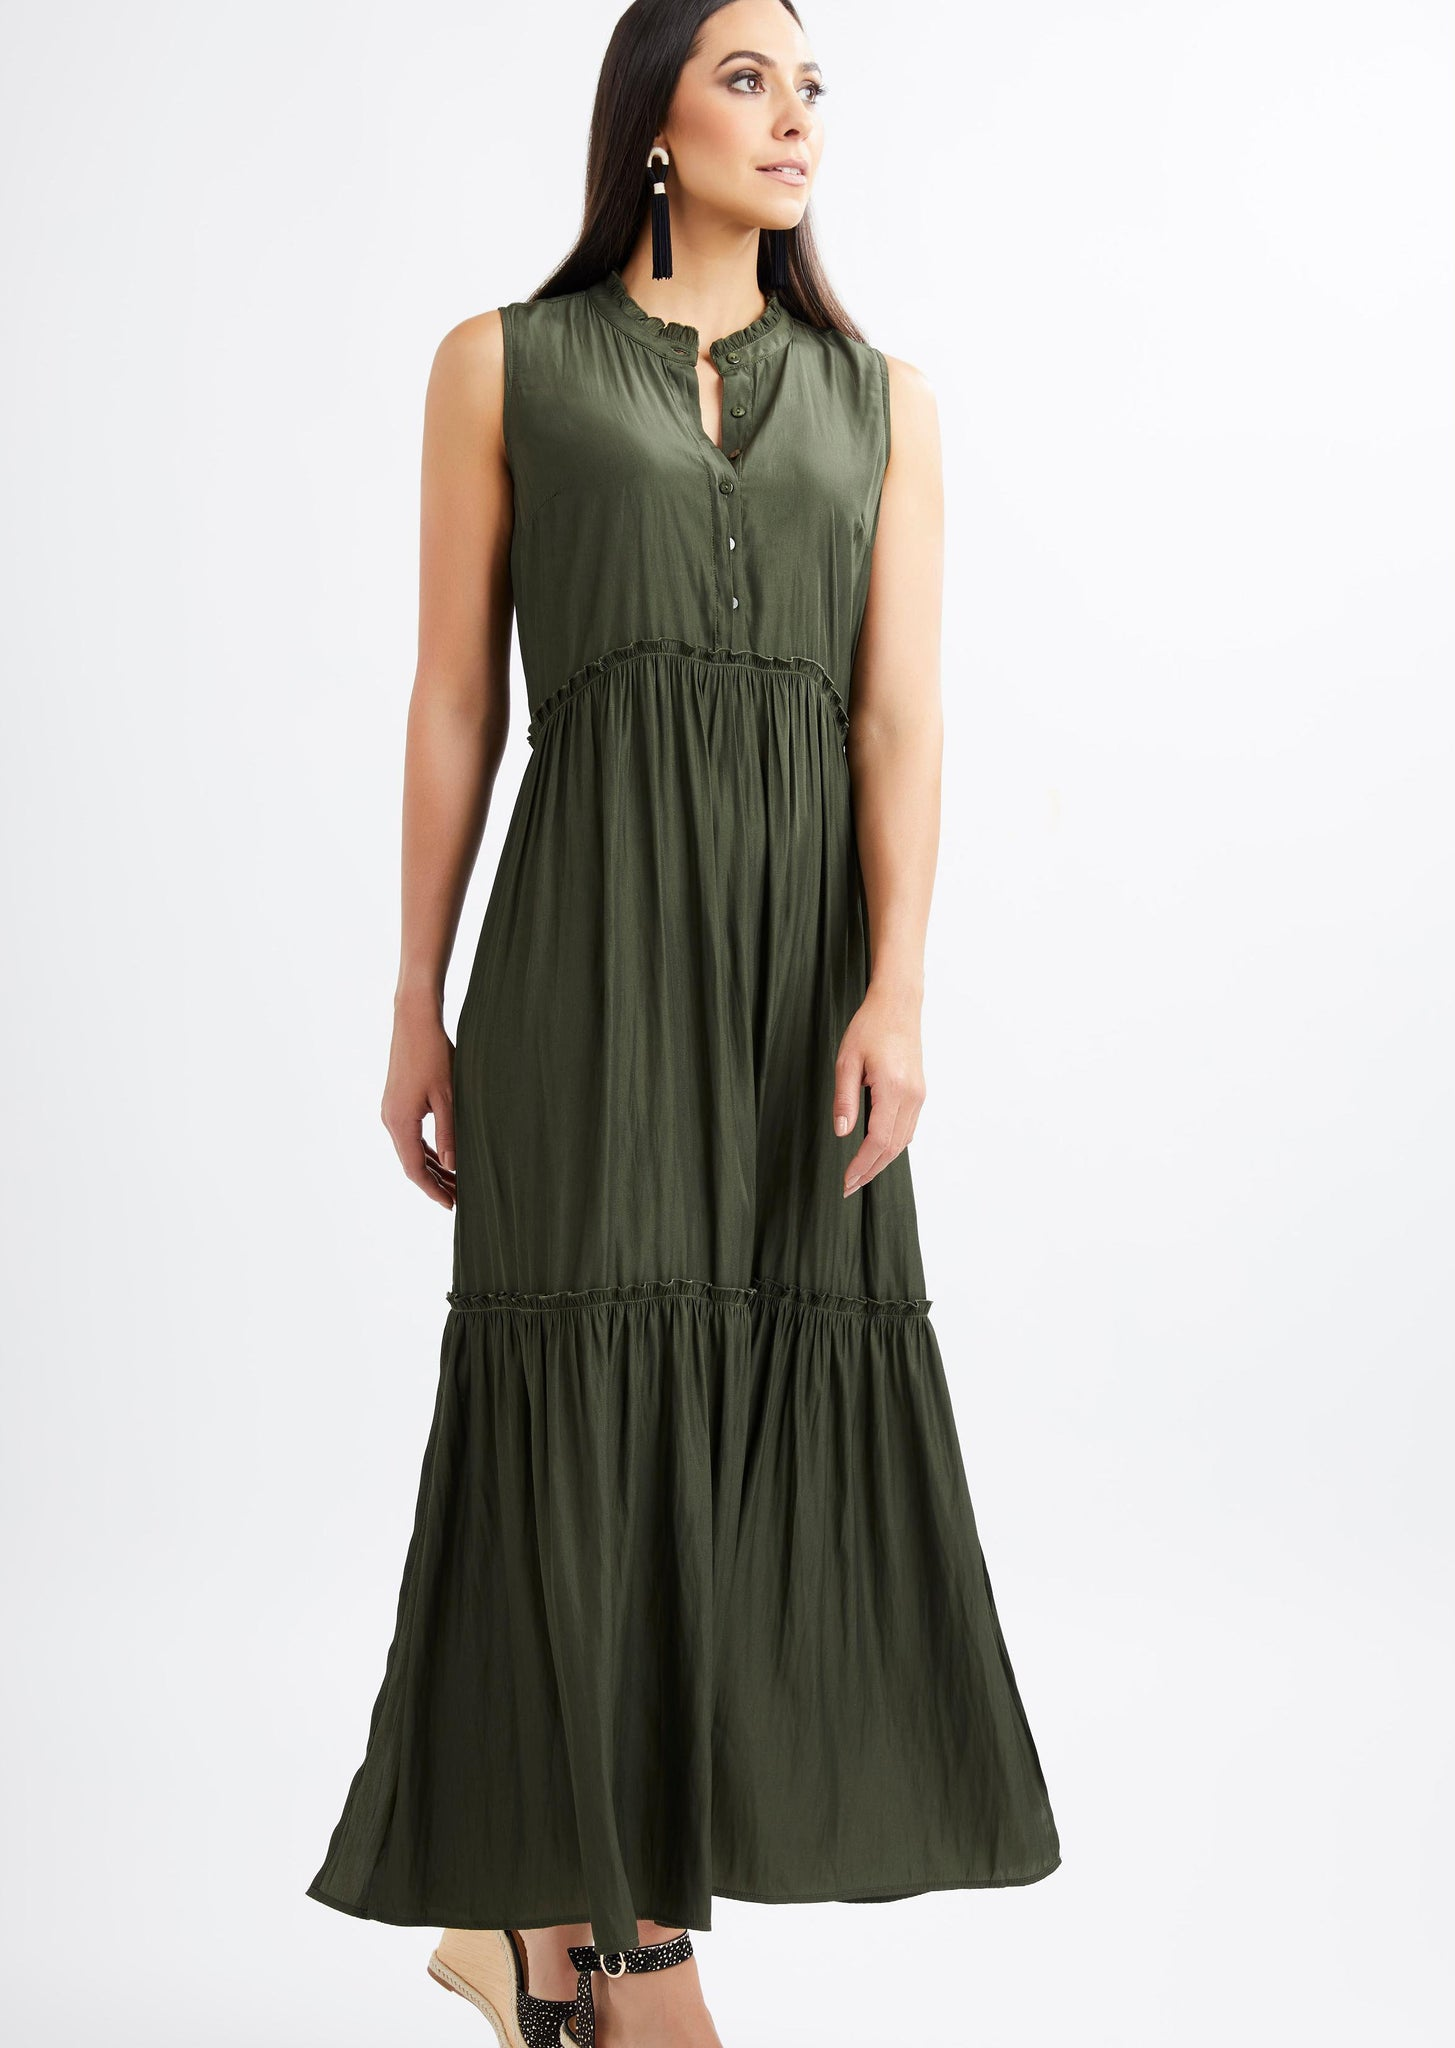 Foil - Kill Me Soft Tier Dress - Olive